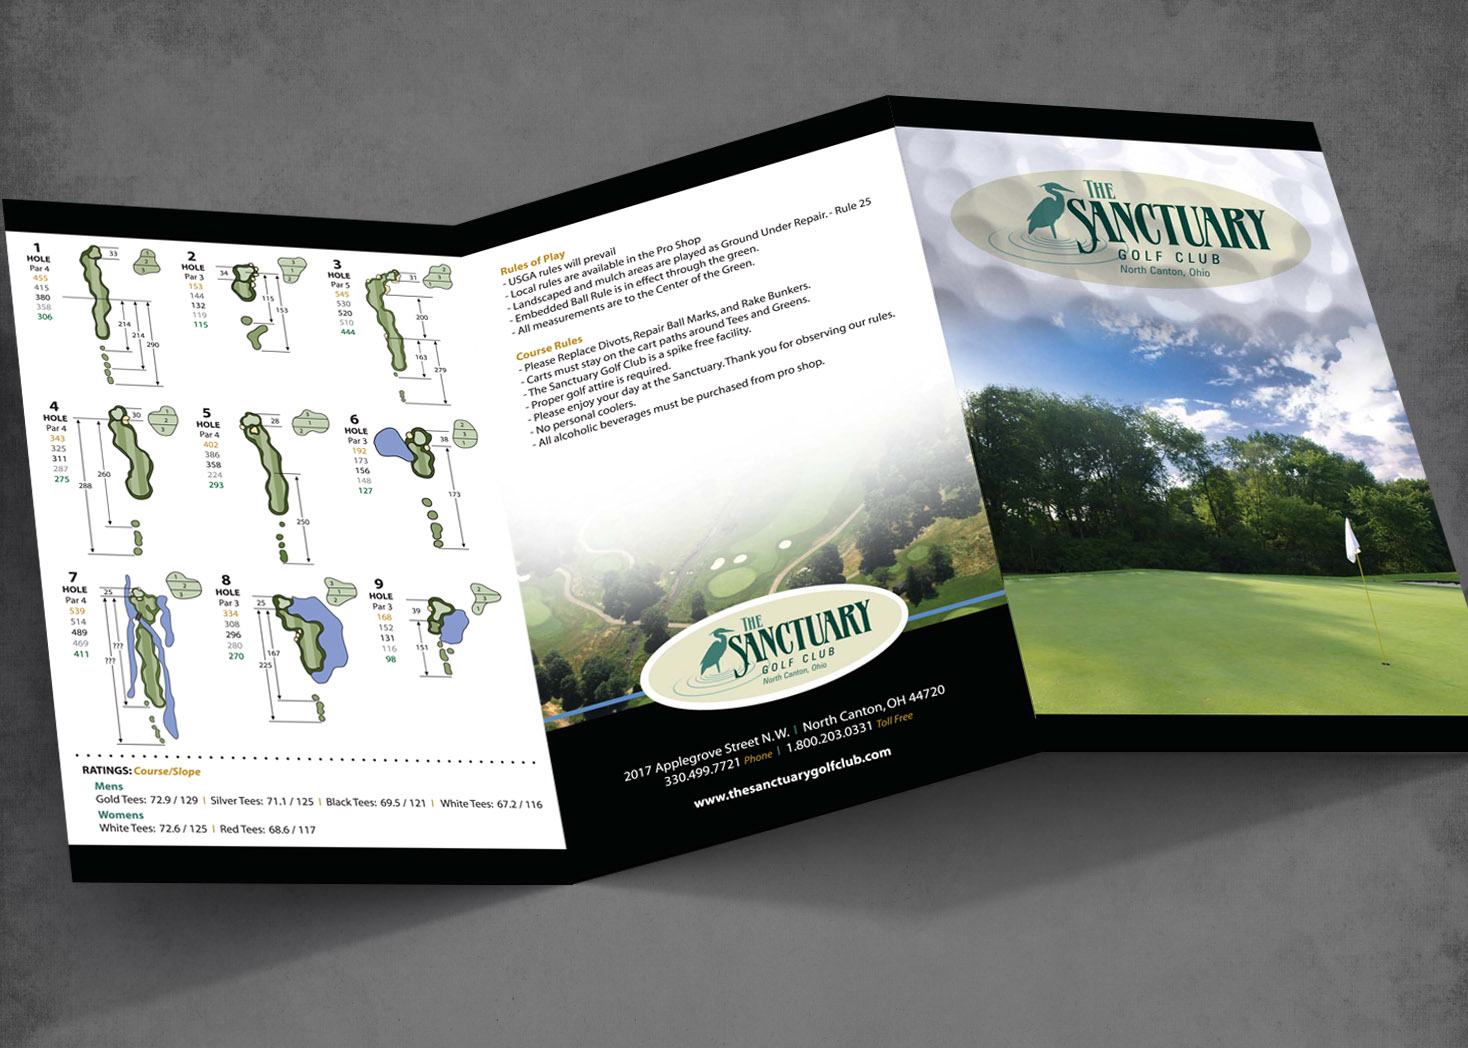 Sanctuary Golf Club - Scorecard Design - Lehman Design